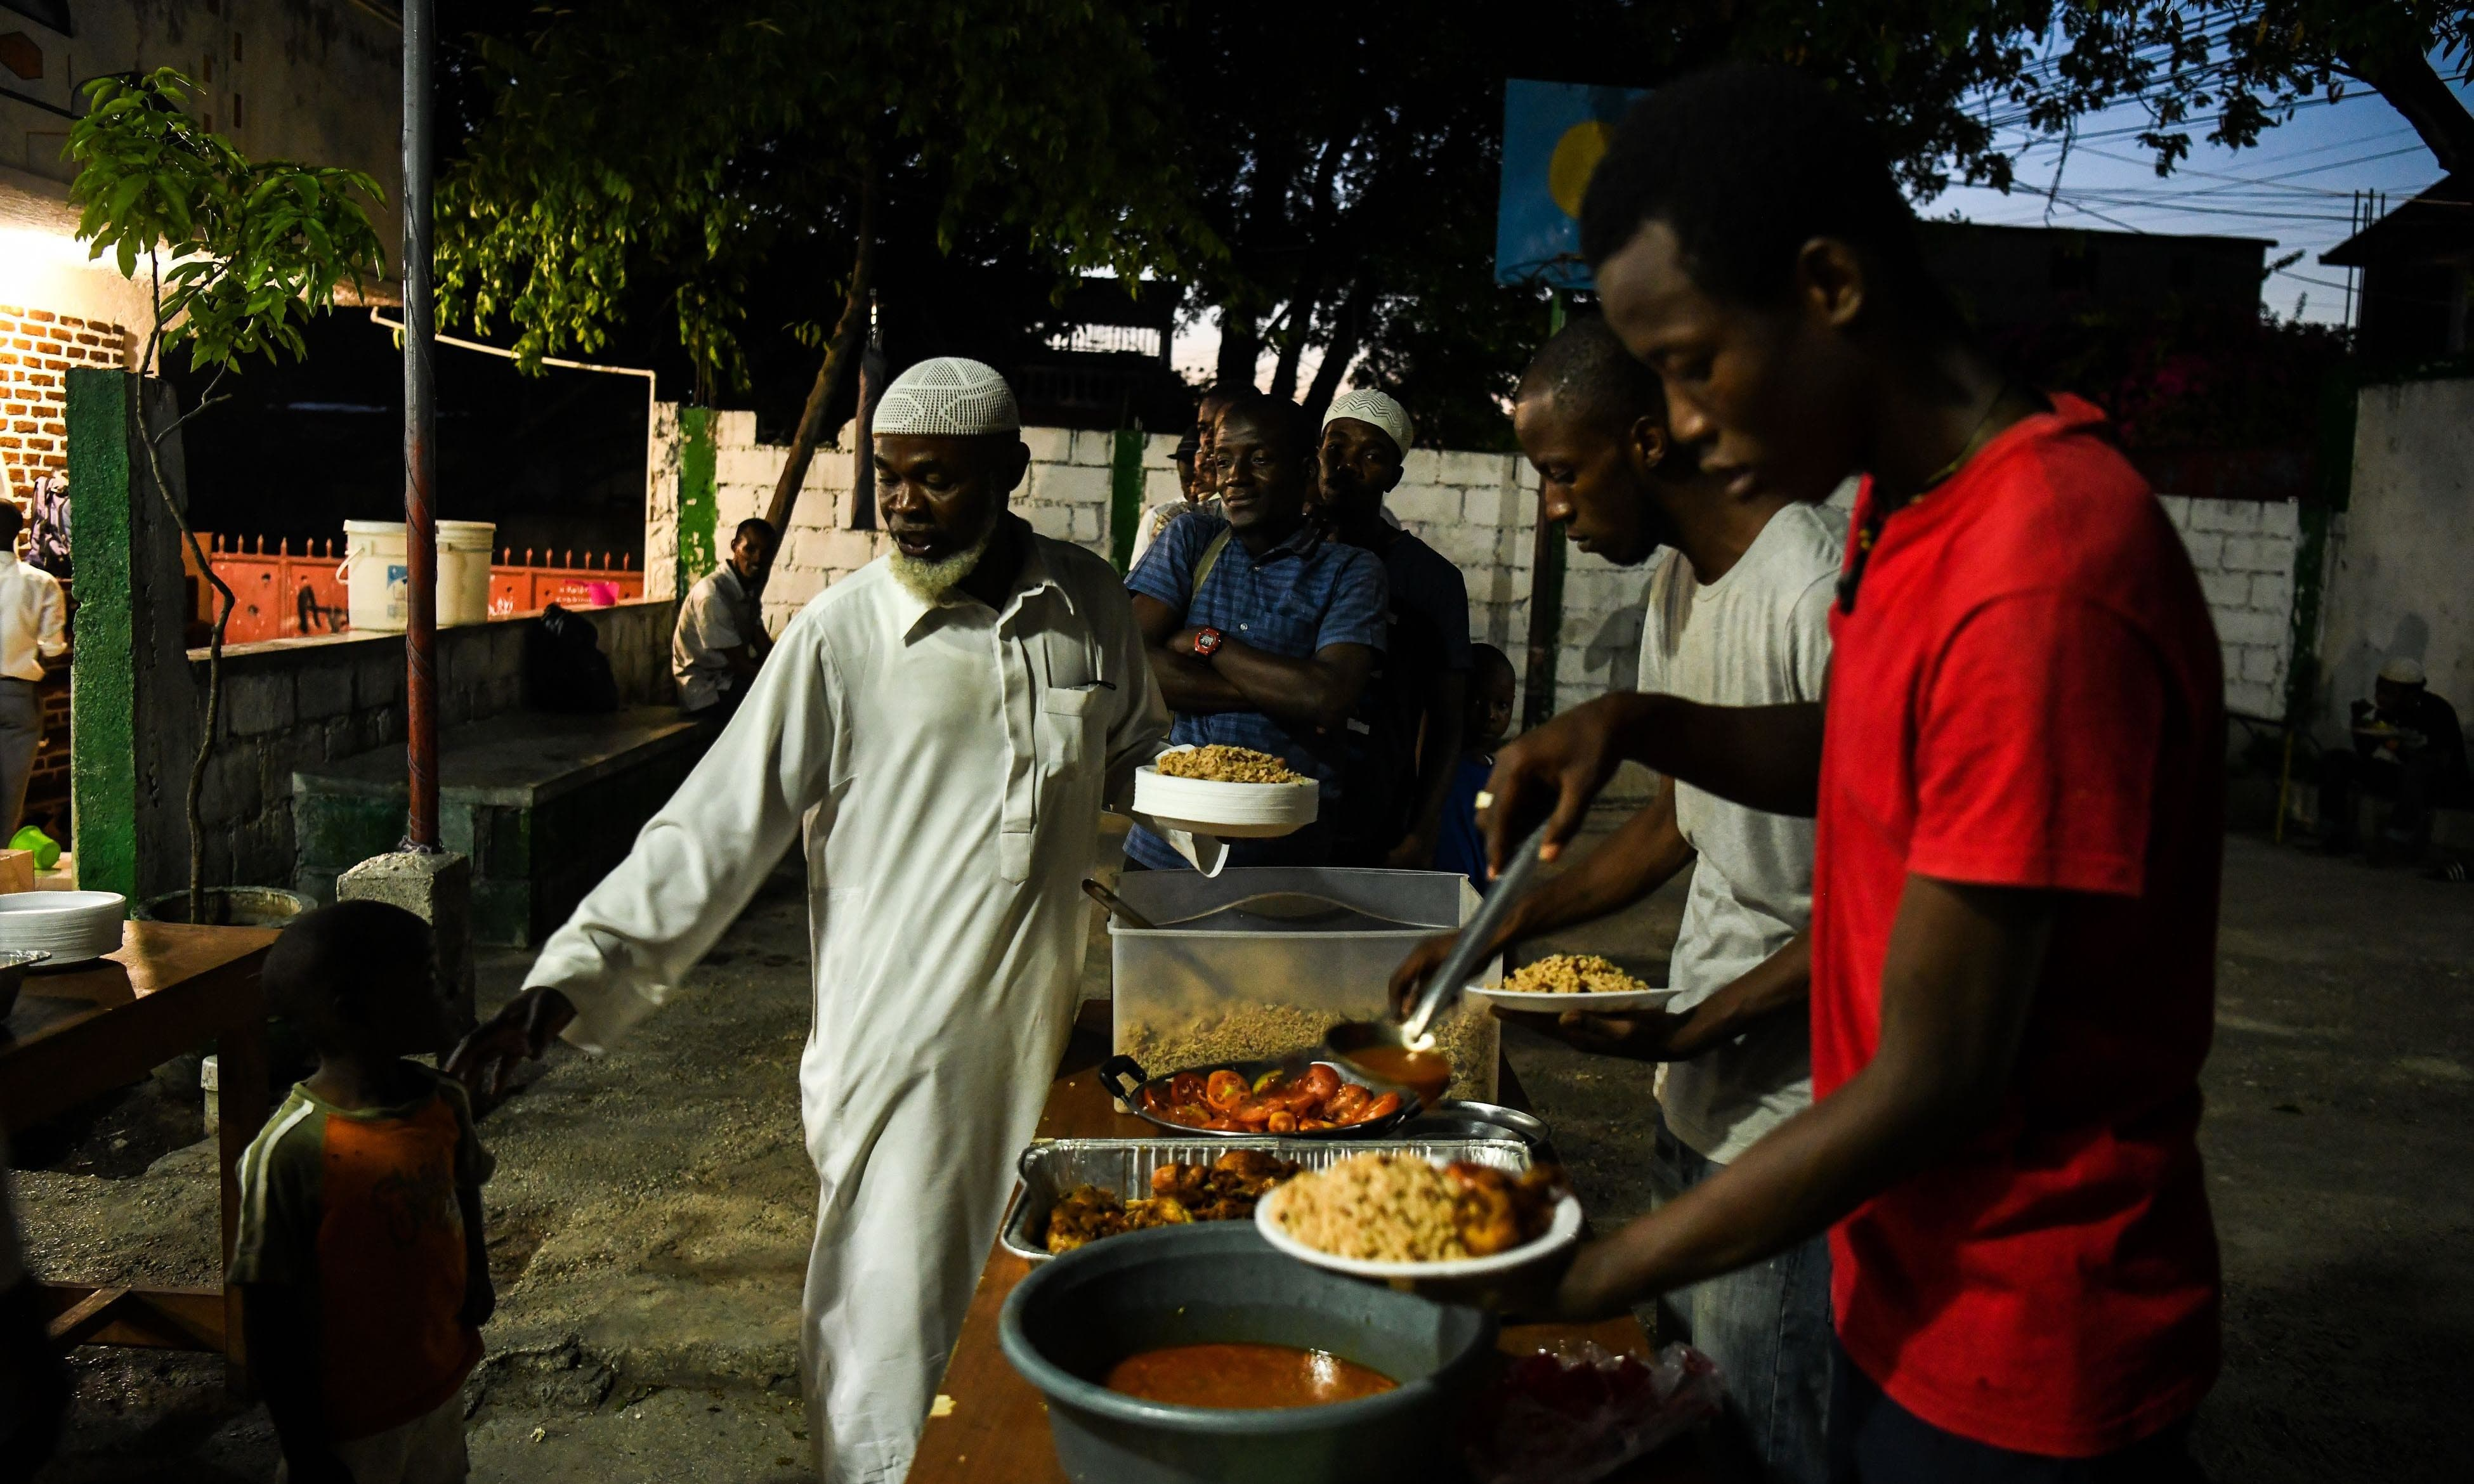 Muslim men stand in queue for food at iftar at the Masjid At-Tawheed mosque in Port-au-Prince in Haiti. — AFP